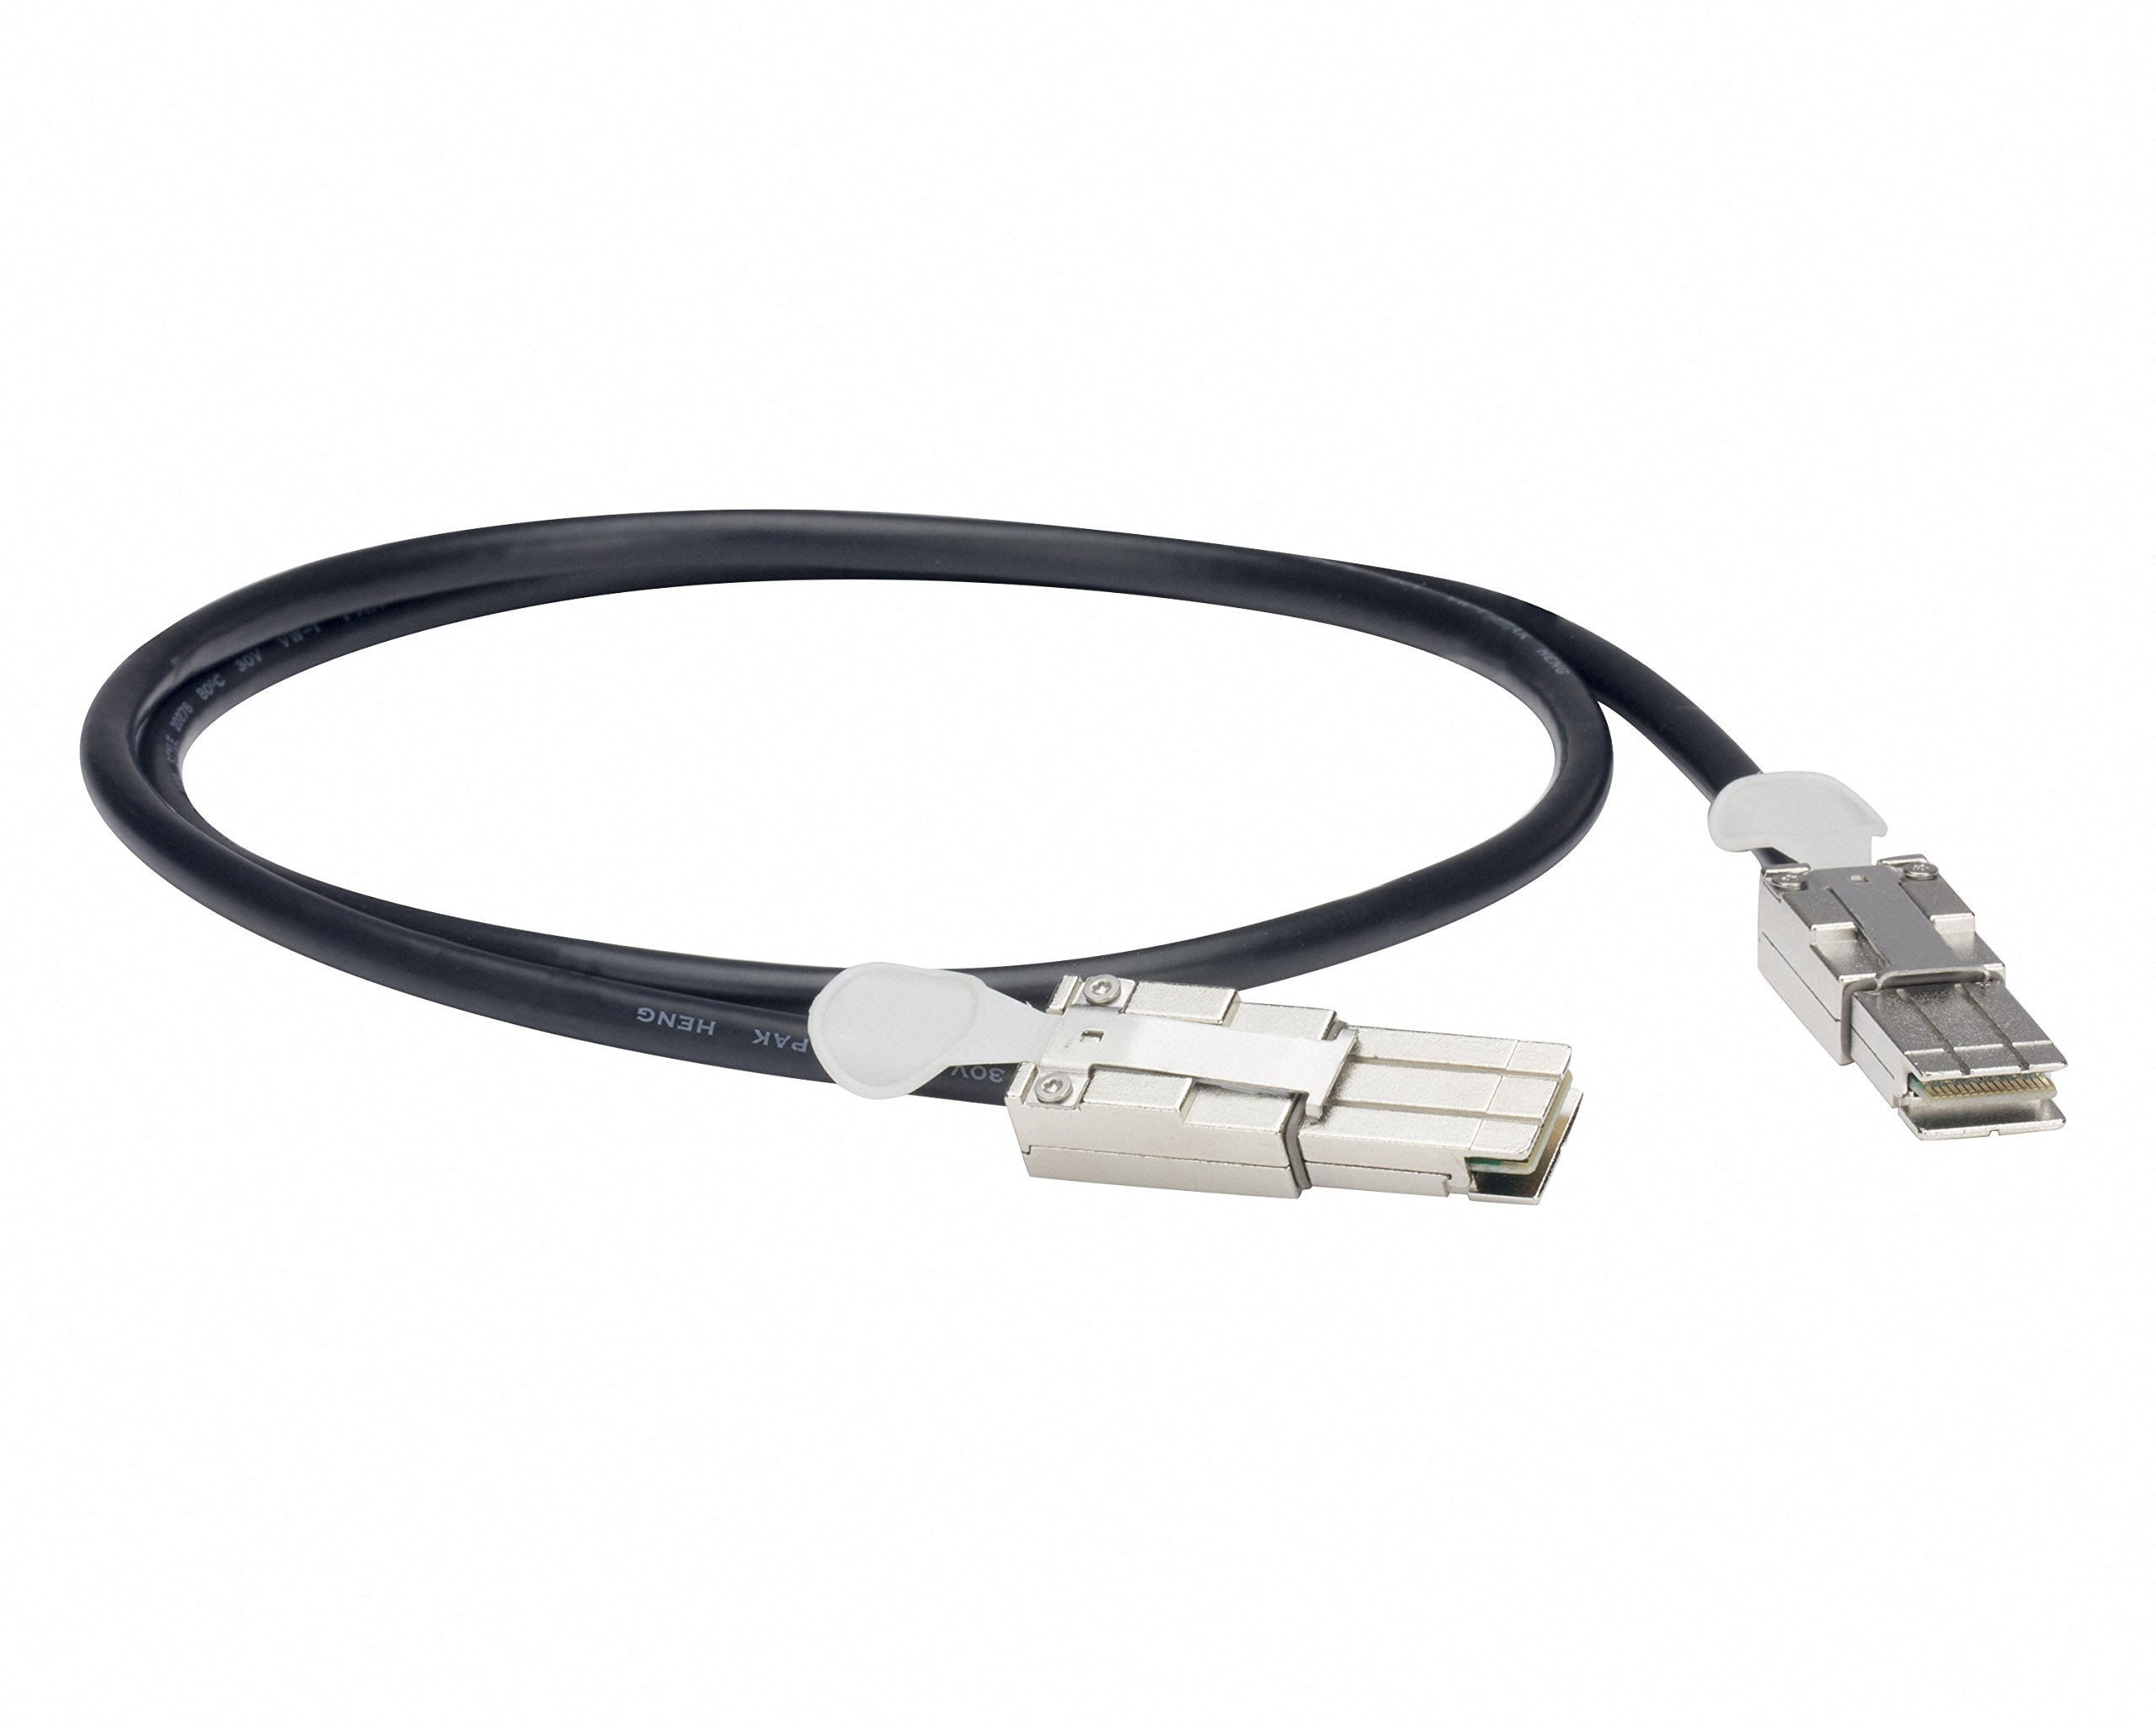 Cisco Compatible FlexStack/Blade Switch 1M Stack Cable CAB-STK-E-1M by Boxfire